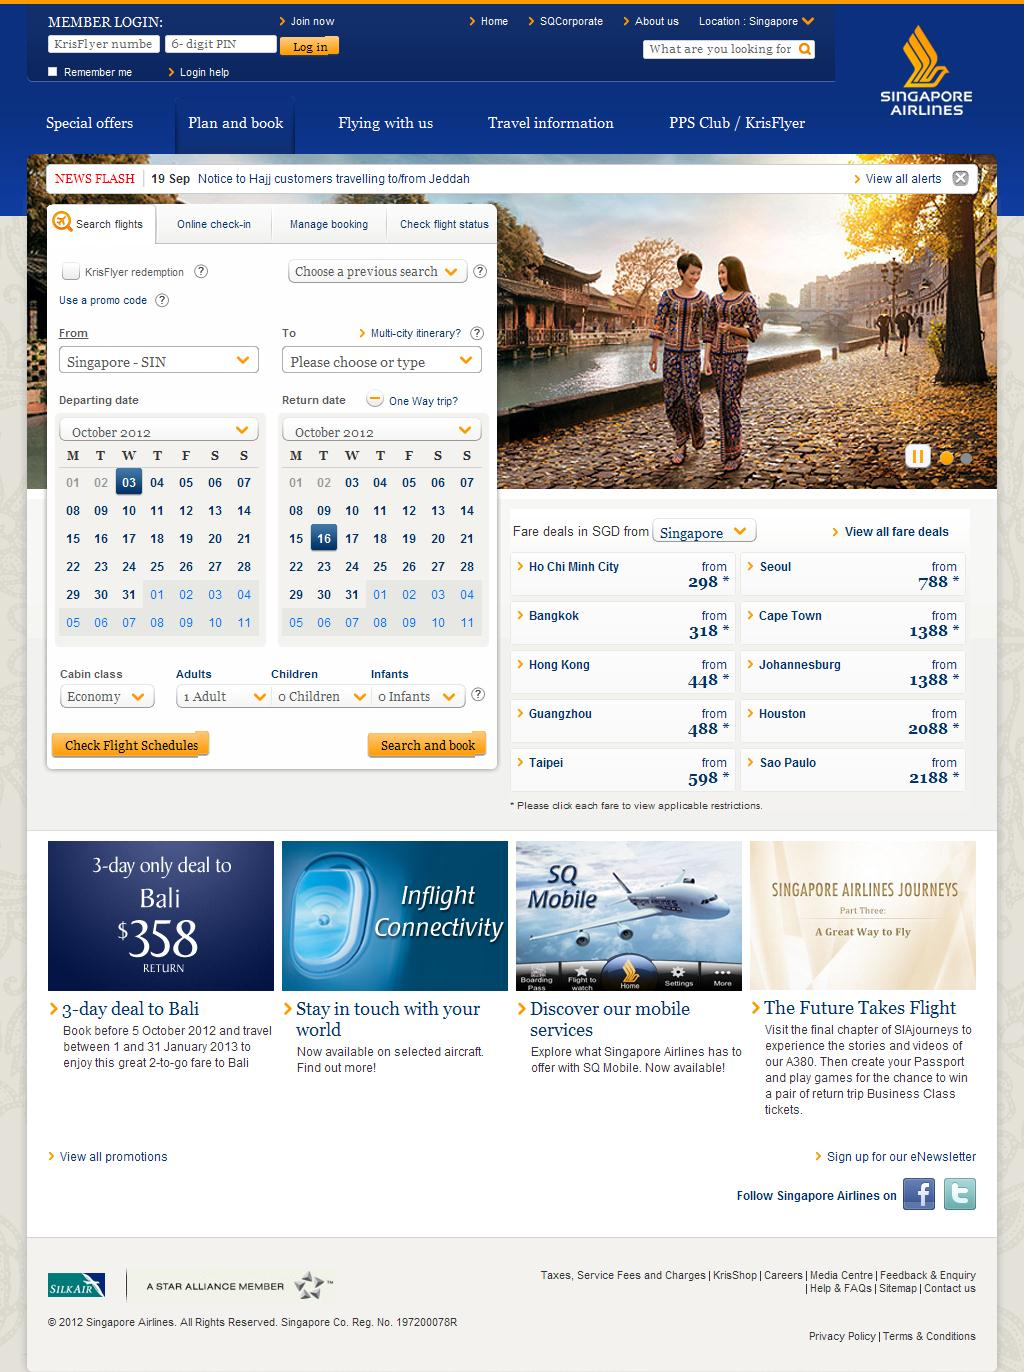 Welcome to Singapore Airlines